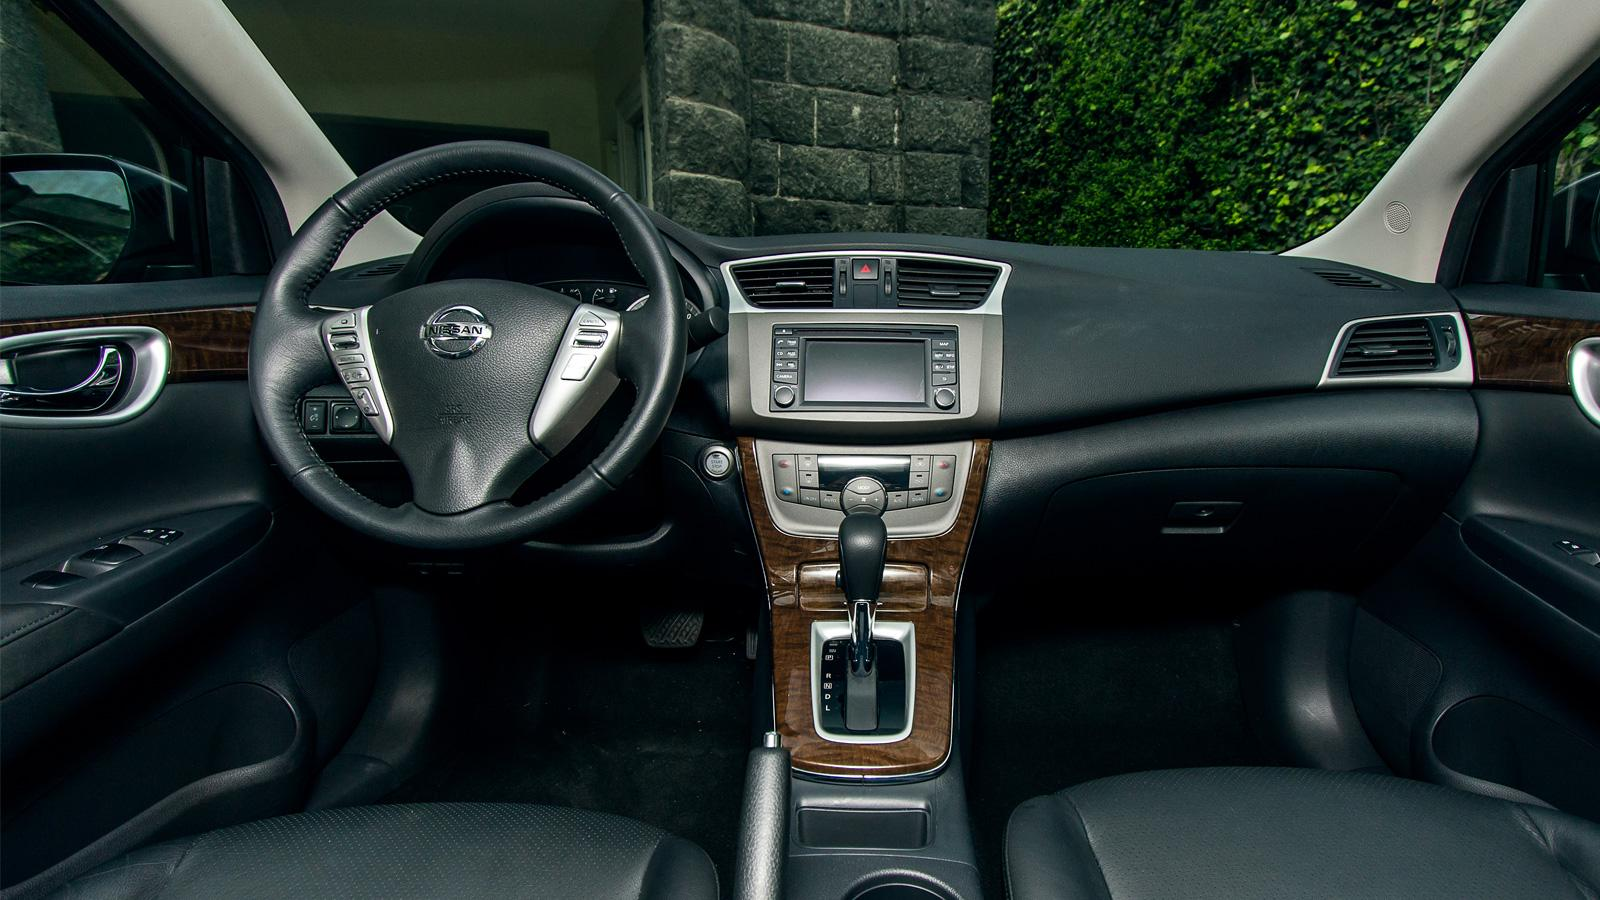 Video 2016 Nissan Maxima Sr Review likewise Nuevos Nissan Sentra Y Altima 2013 Debut En Chile besides Nissan Altima Sl 2016 in addition Exterior as well 5 Things To Know About The 2016 Nissan Altima. on 2016 nissan altima sr